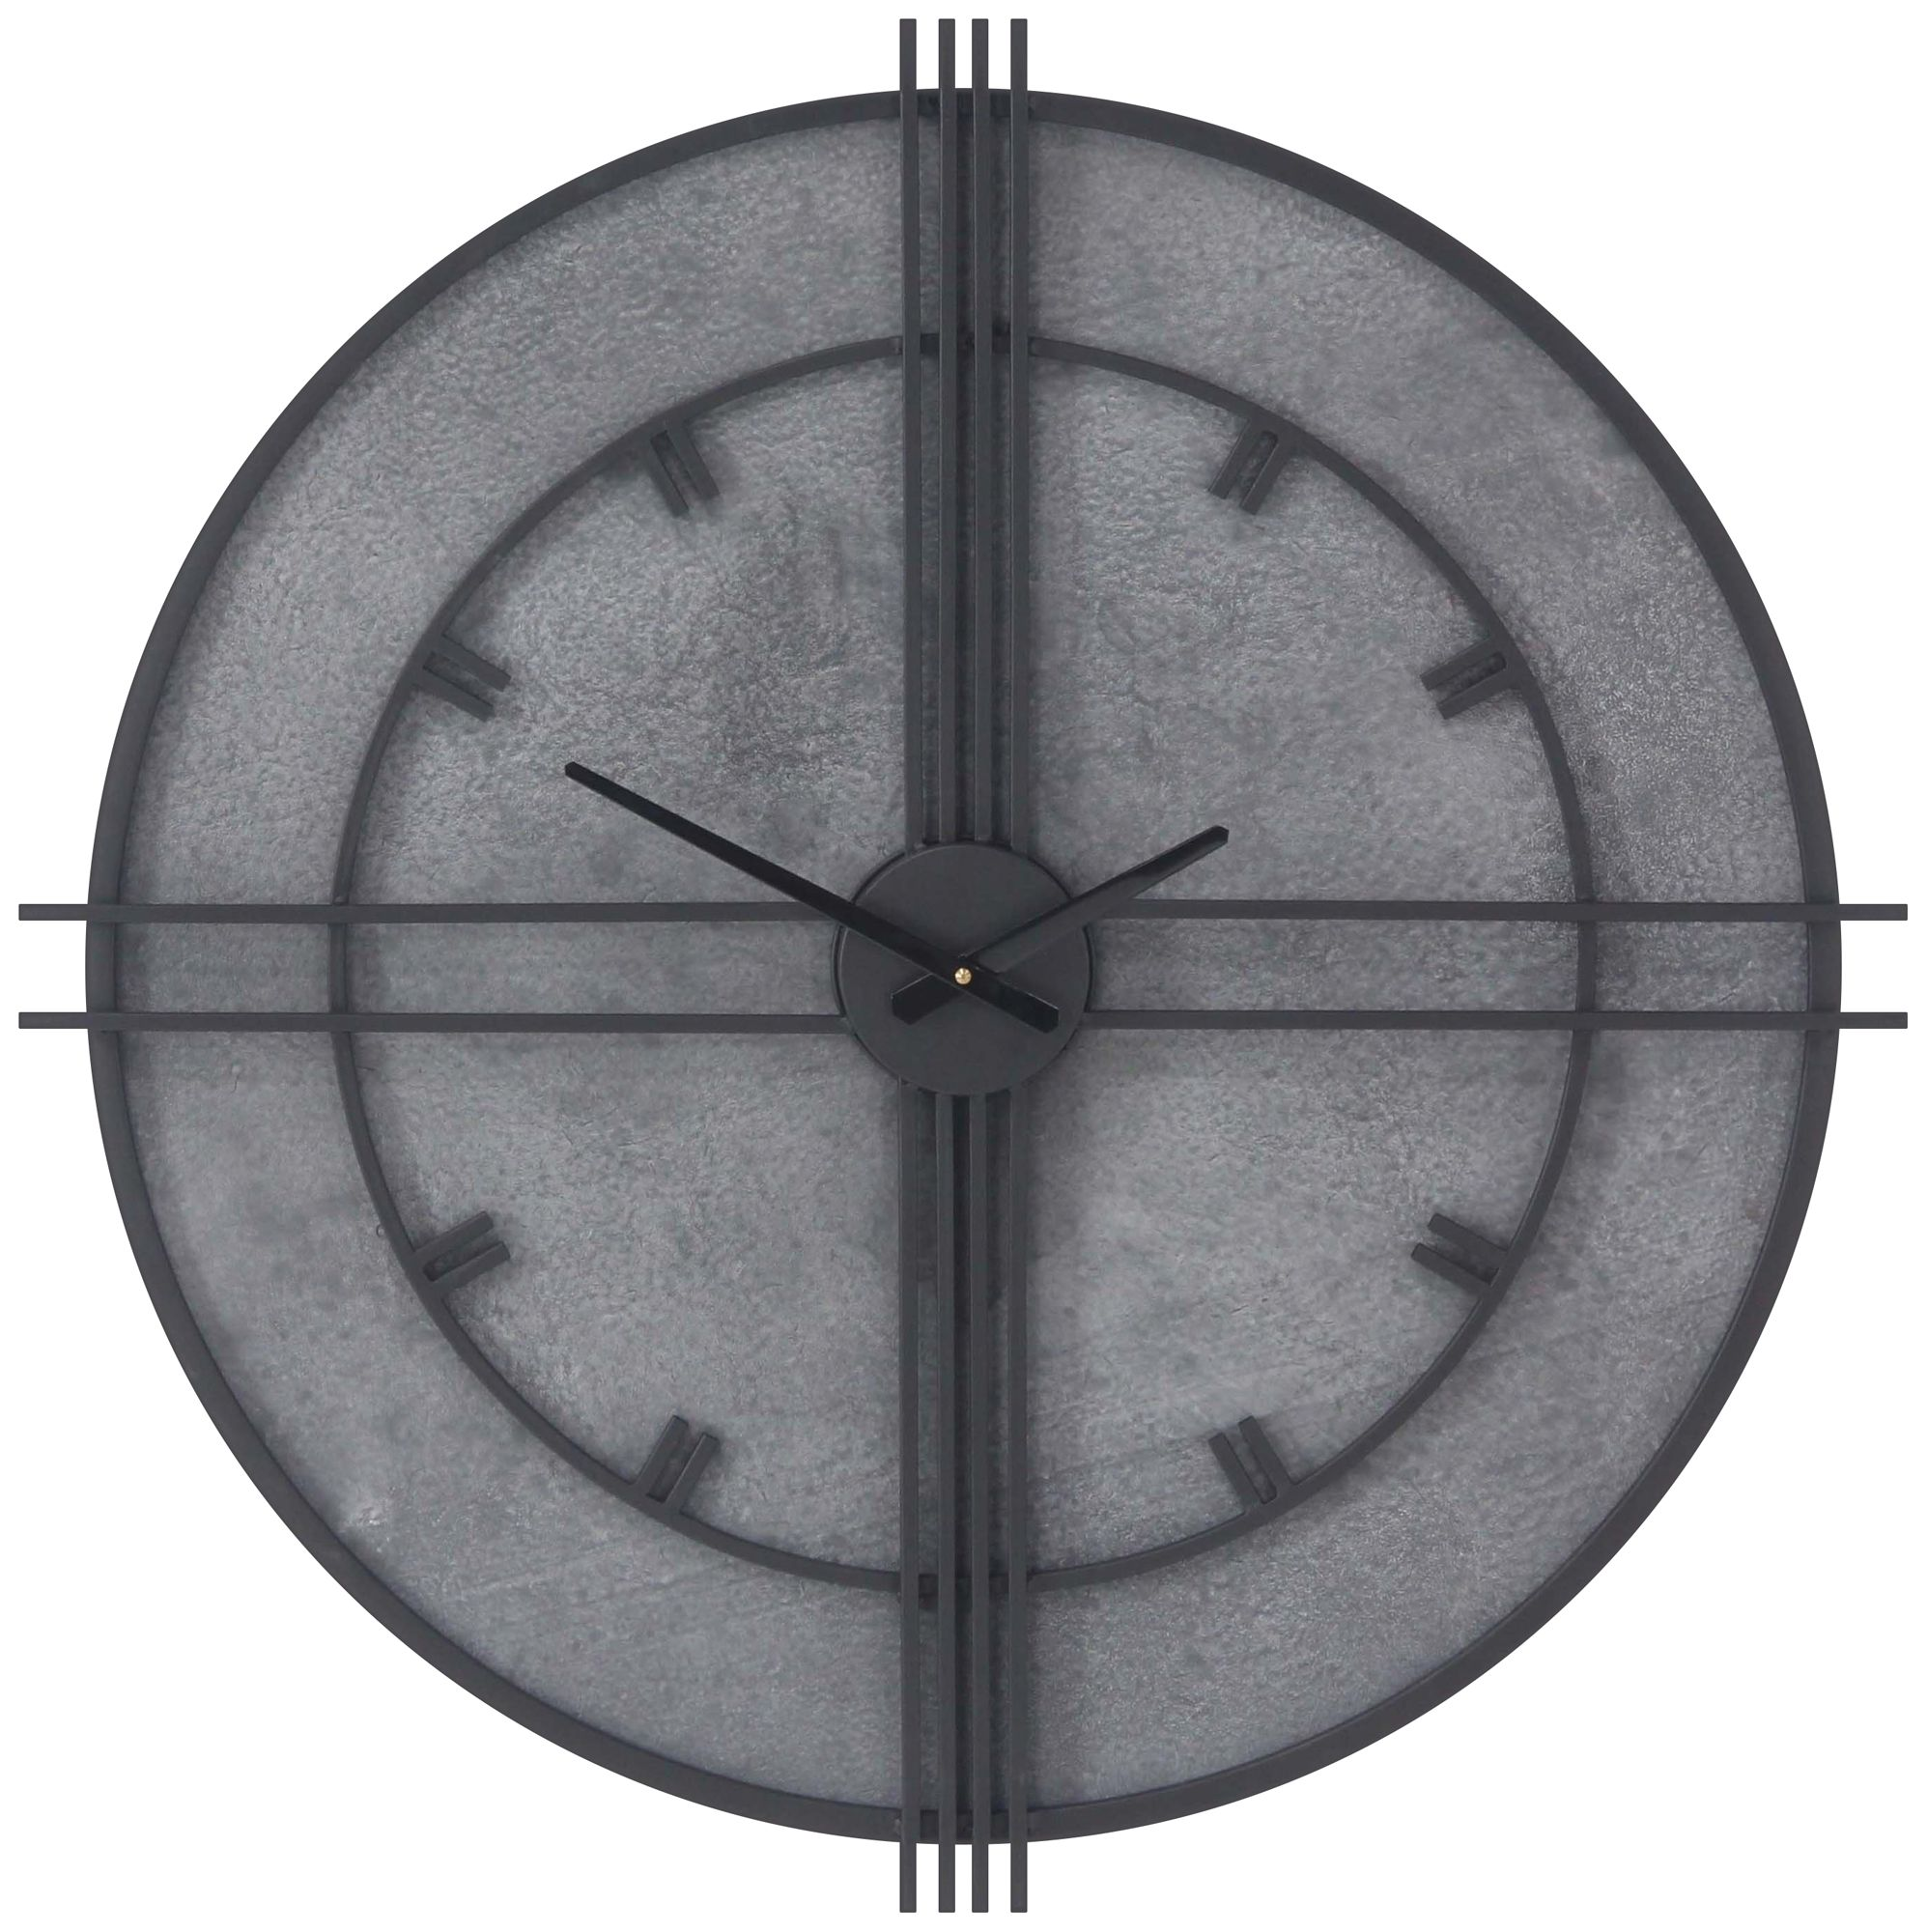 Cielo Mirrored 20 Square Wall Clock 1J303 Lamps Plus